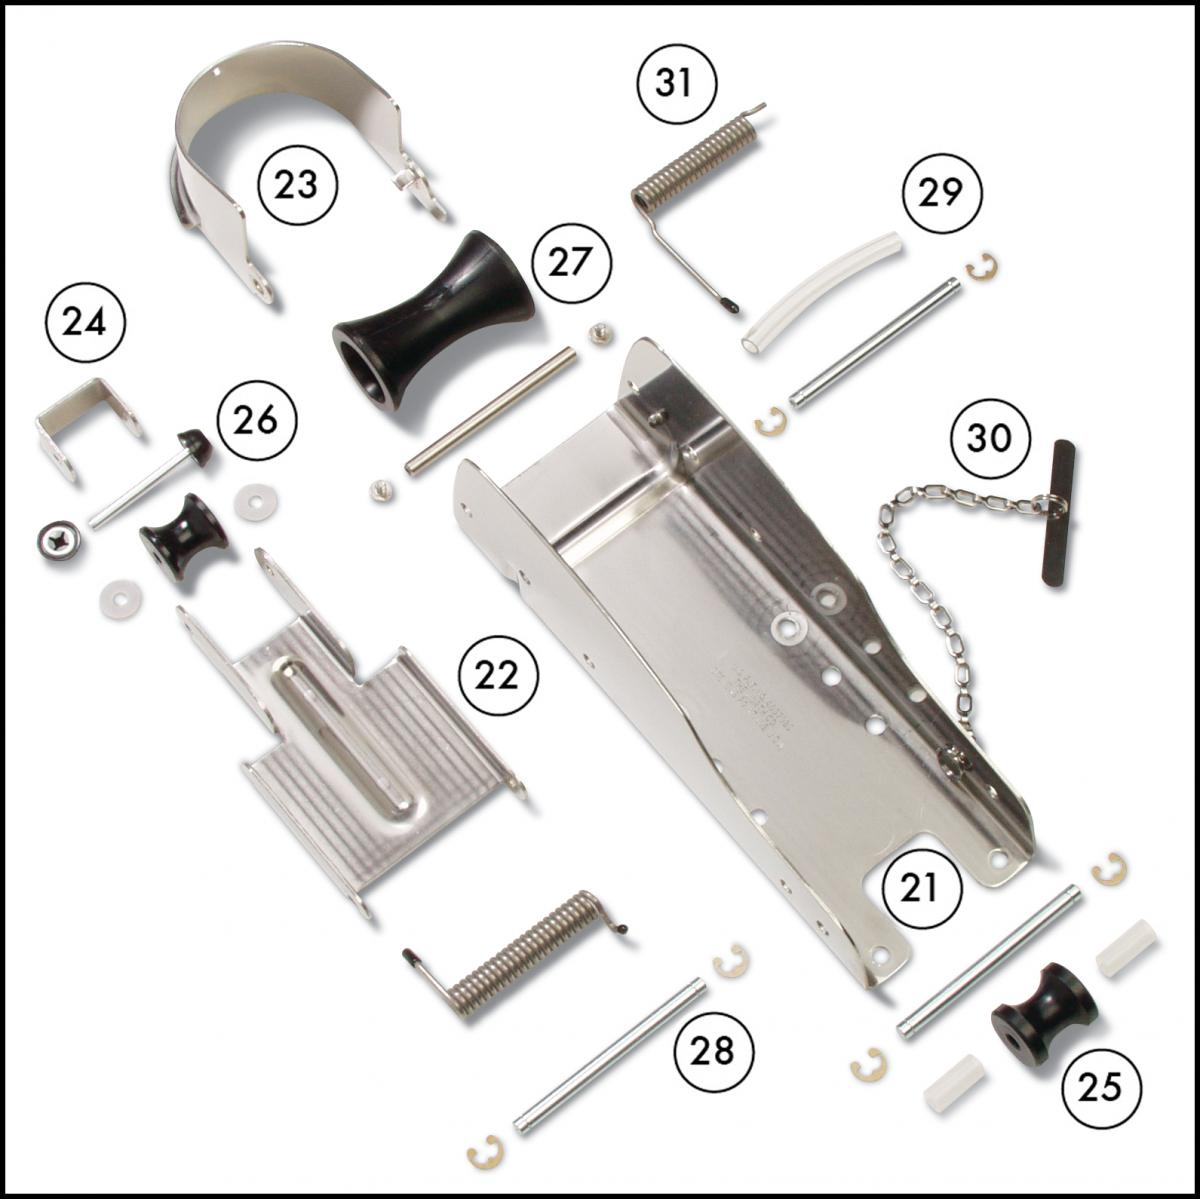 Anchormate ST replacement parts